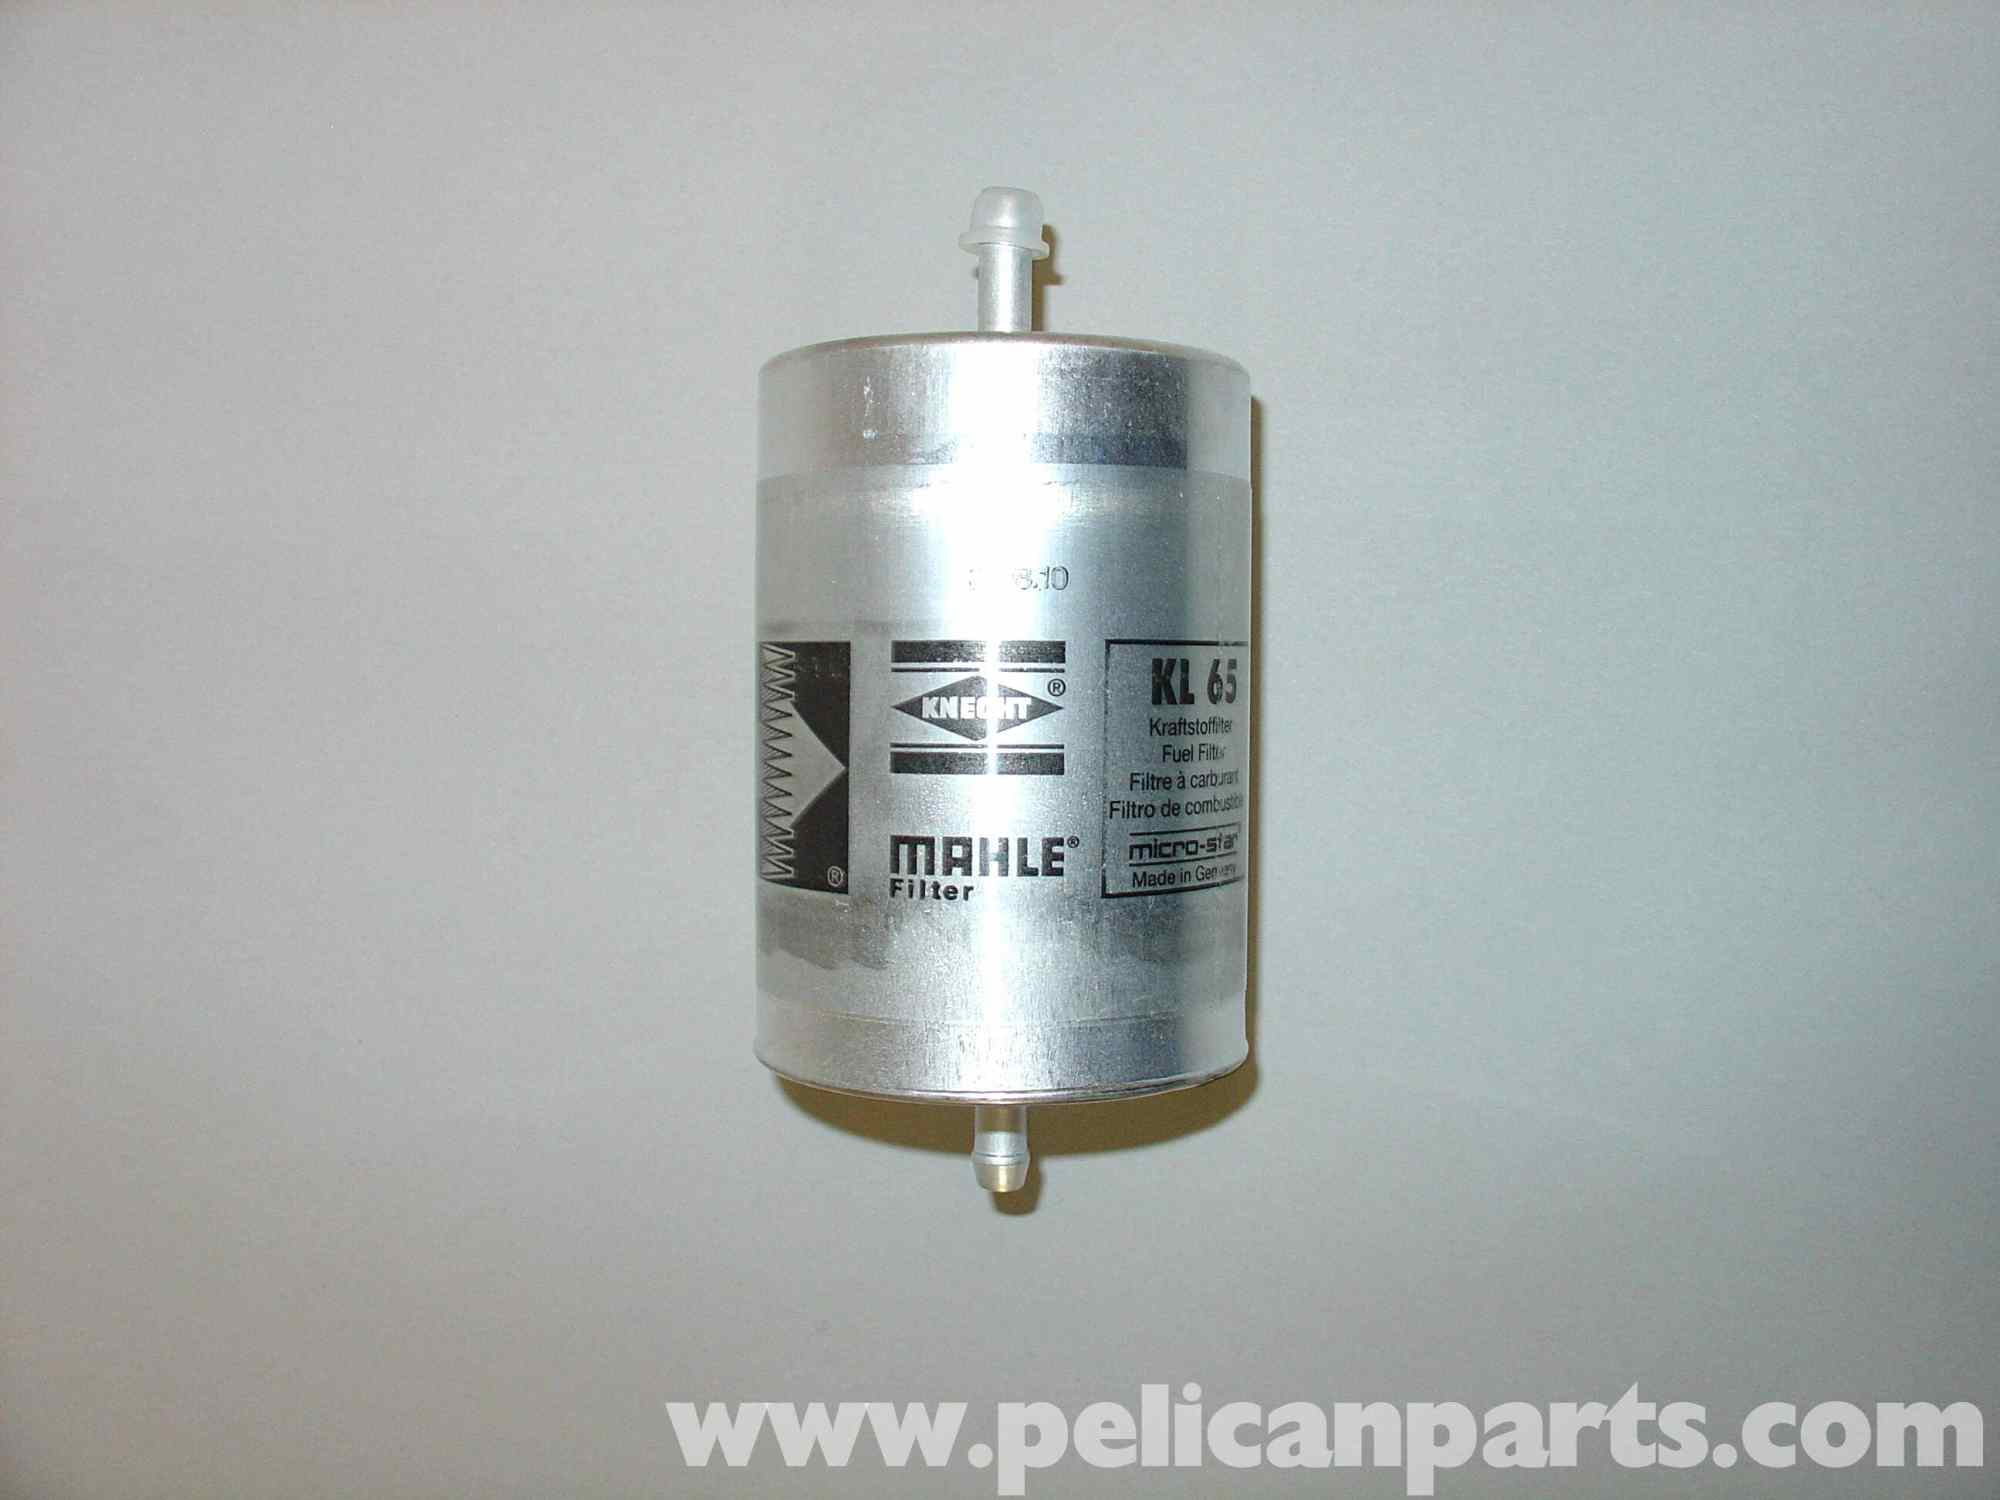 hight resolution of mercedes benz w210 fuel filter replacement 1996 03 e320 e420large image extra large